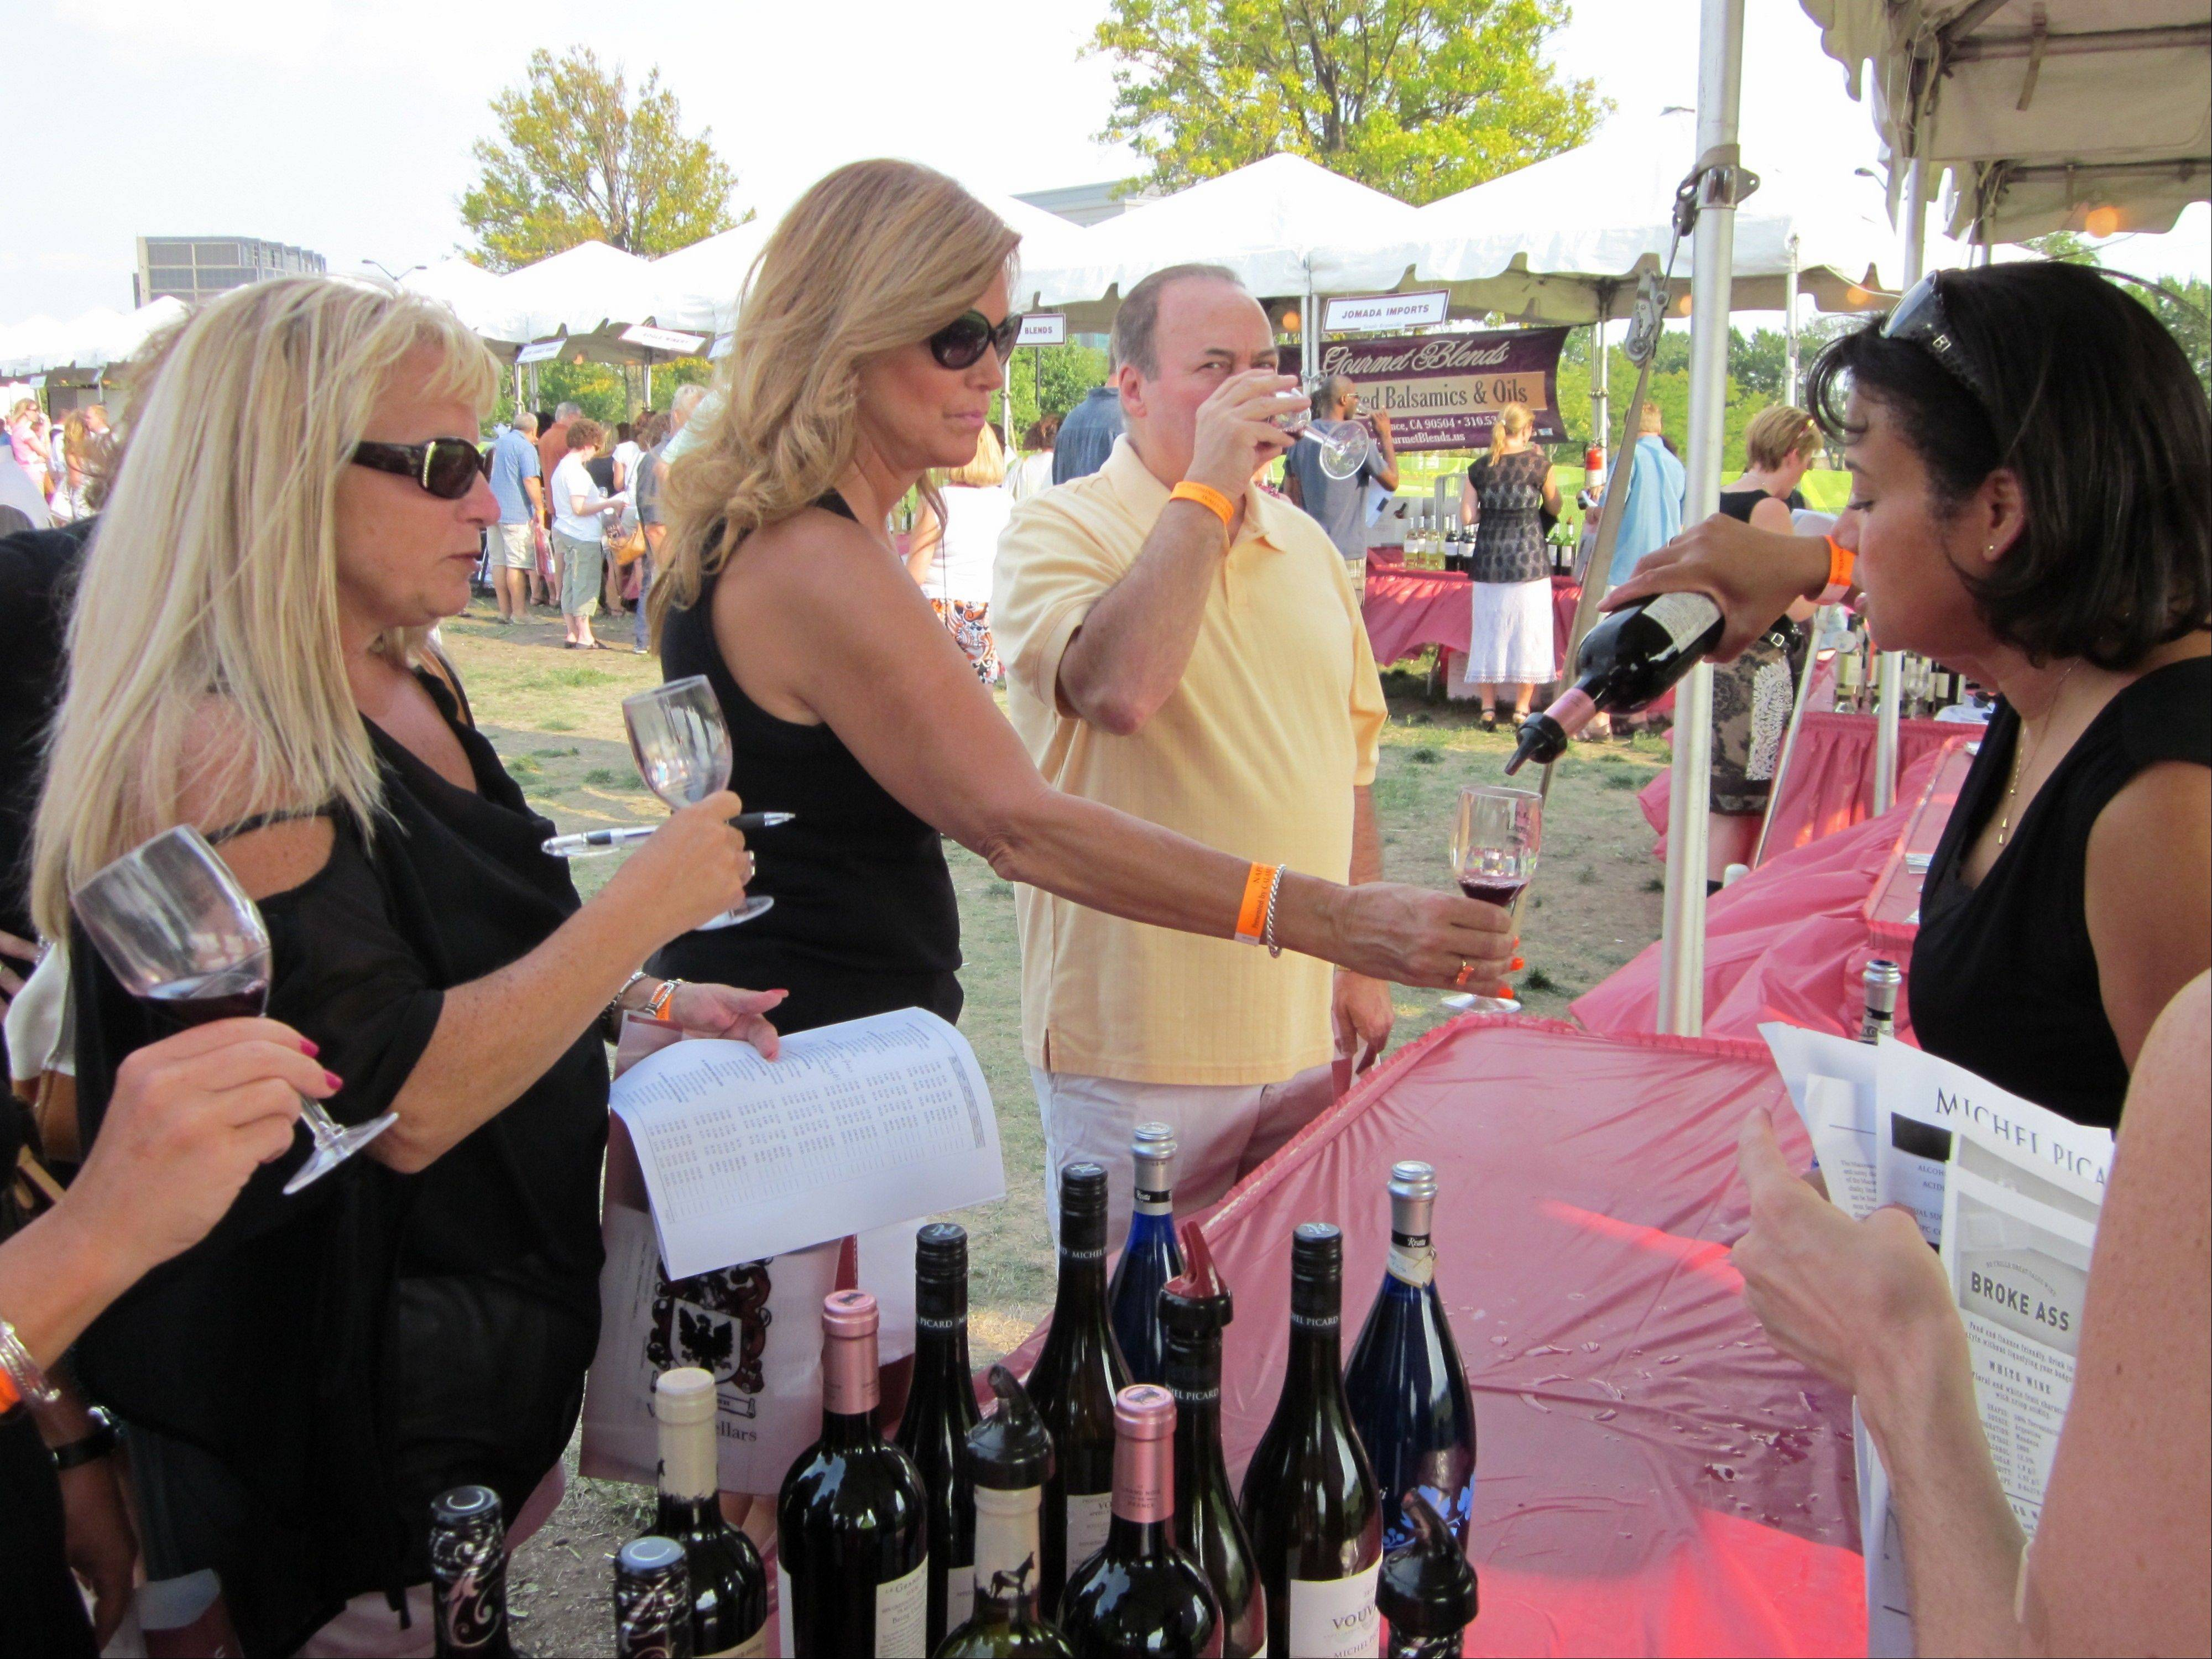 Pam Komarewich, left, of Naperville, looks on as Tiffany Hoster of the Prestige Wine Group pours Naperville resident Kathy DiCianni a glass of wine at the Naperville Wine Festival at the CityGate Centre on Saturday.